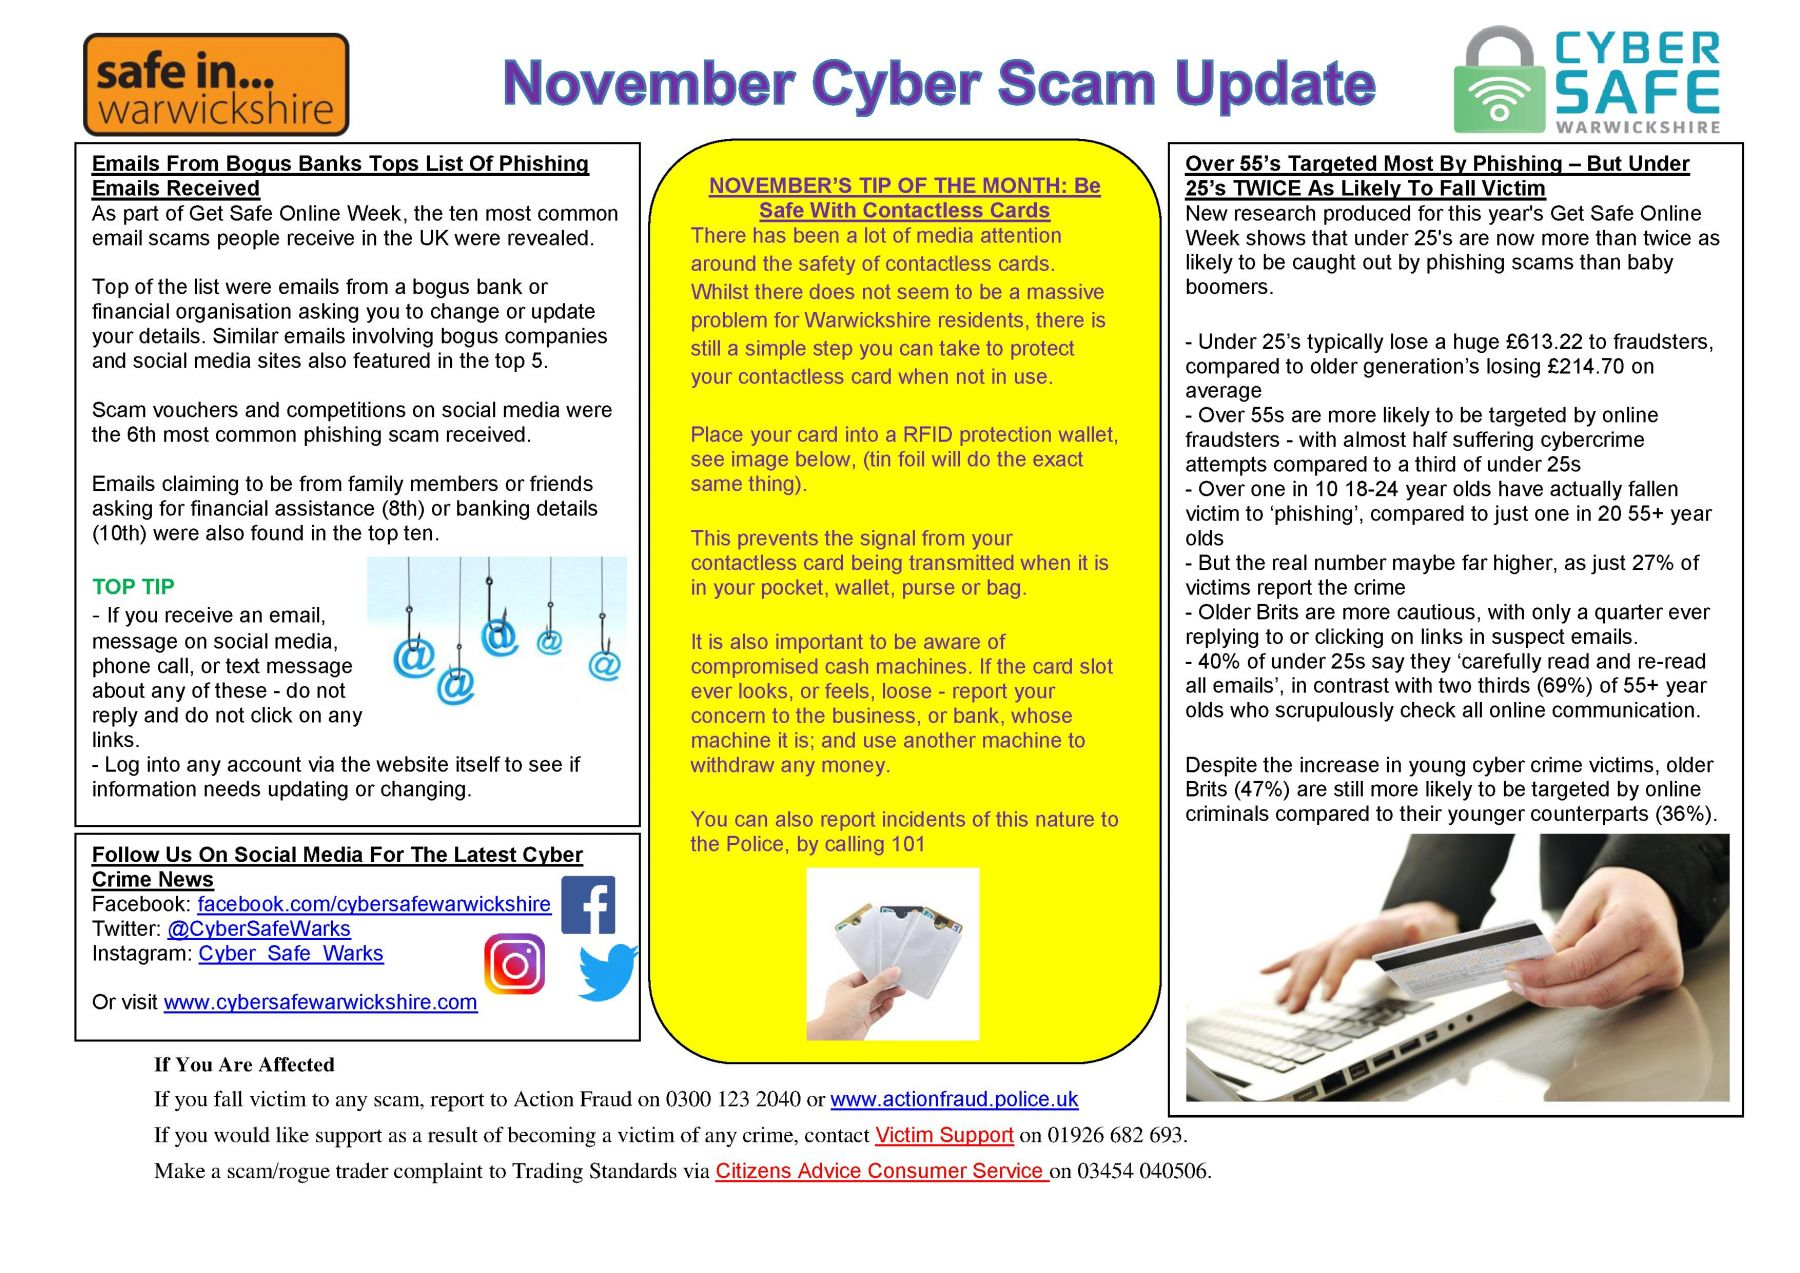 Cyber Safe Warwickshire - November Scam Update Is Now LIVE